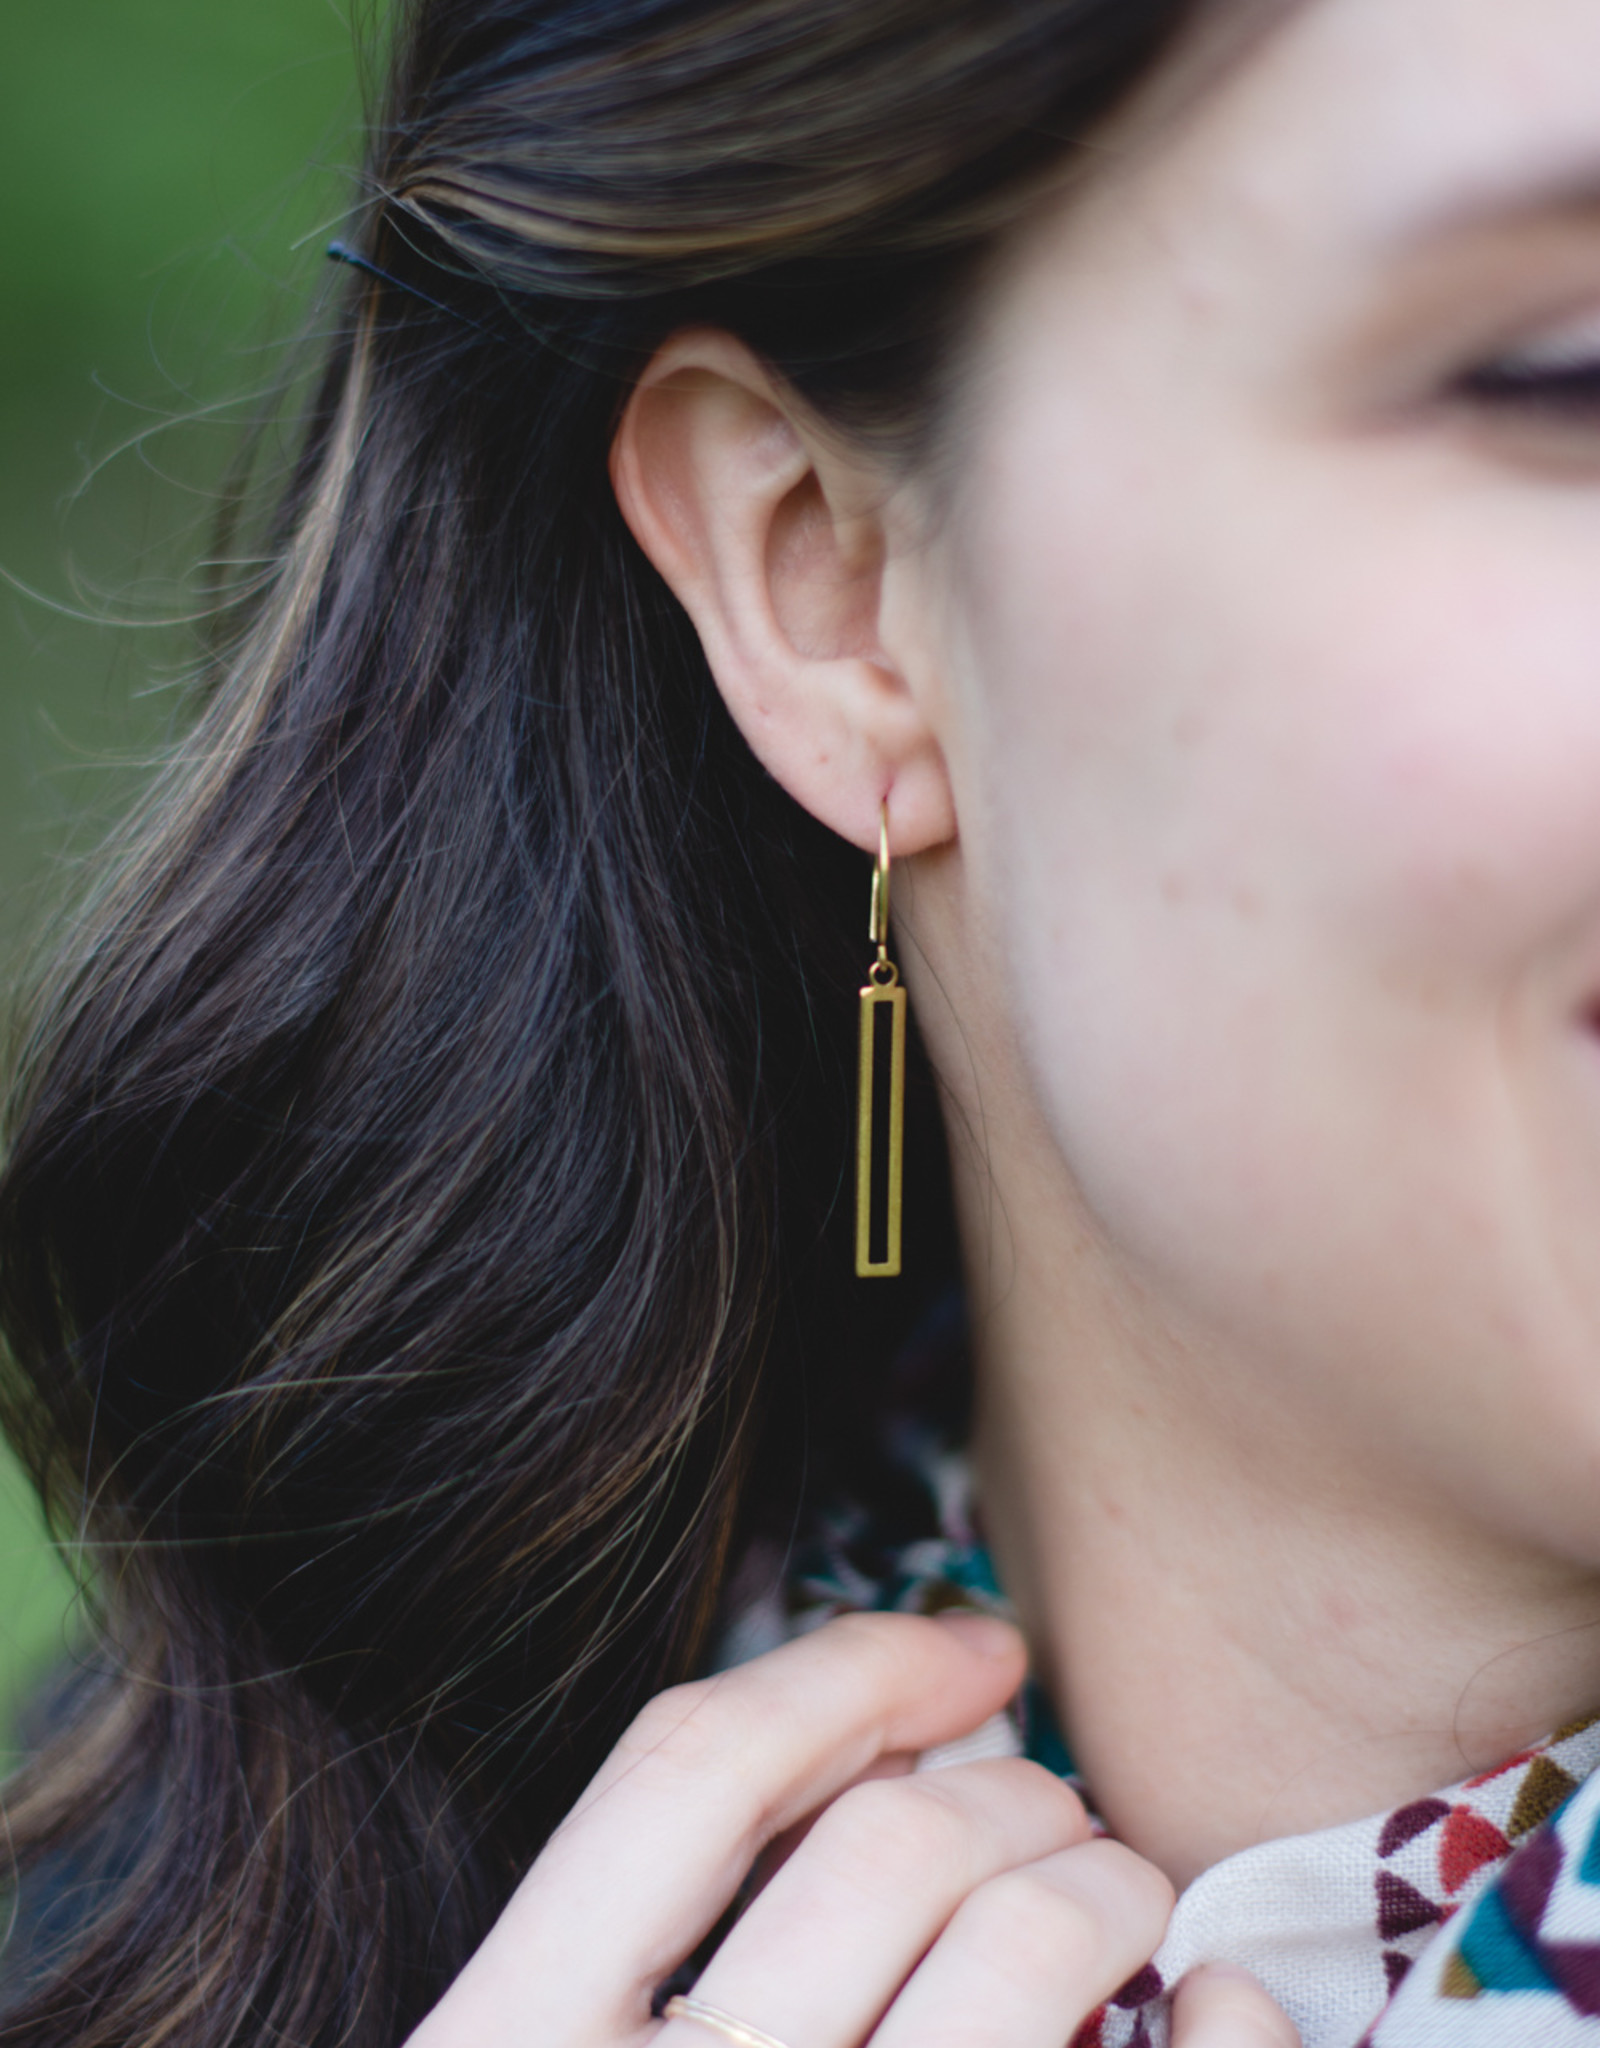 Bloom + Thistle The Marguerite Earring by Bloom + Thistle